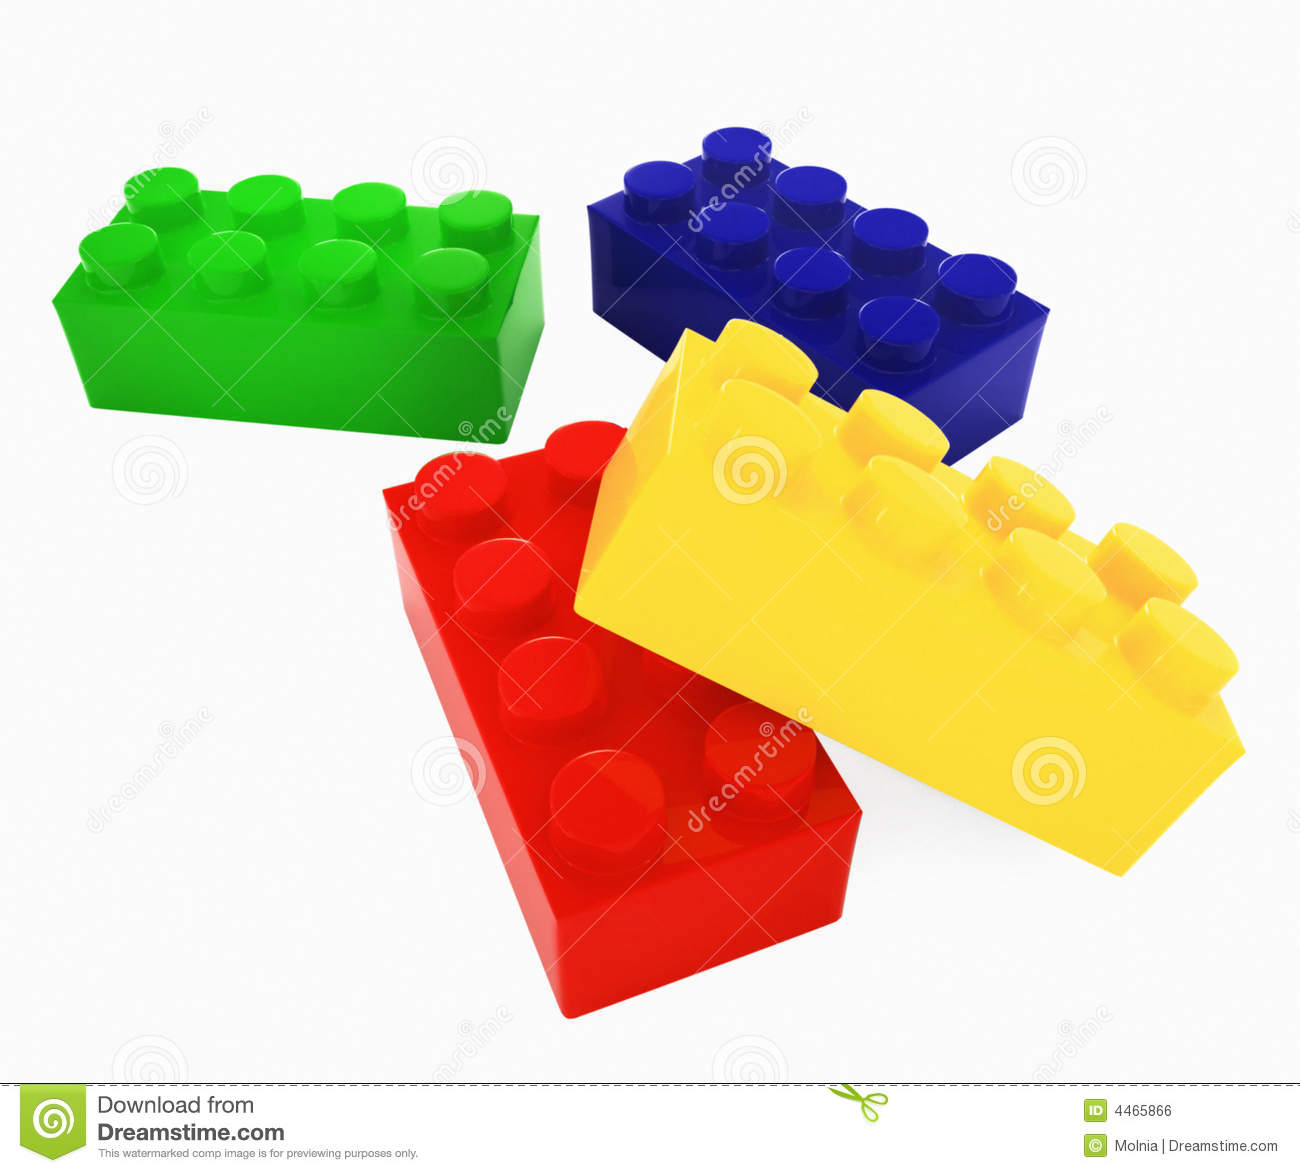 Lego pieces clipart picture freeuse download Color Lego Blocks Royalty Free Stock Image - Image: 4465866 picture freeuse download